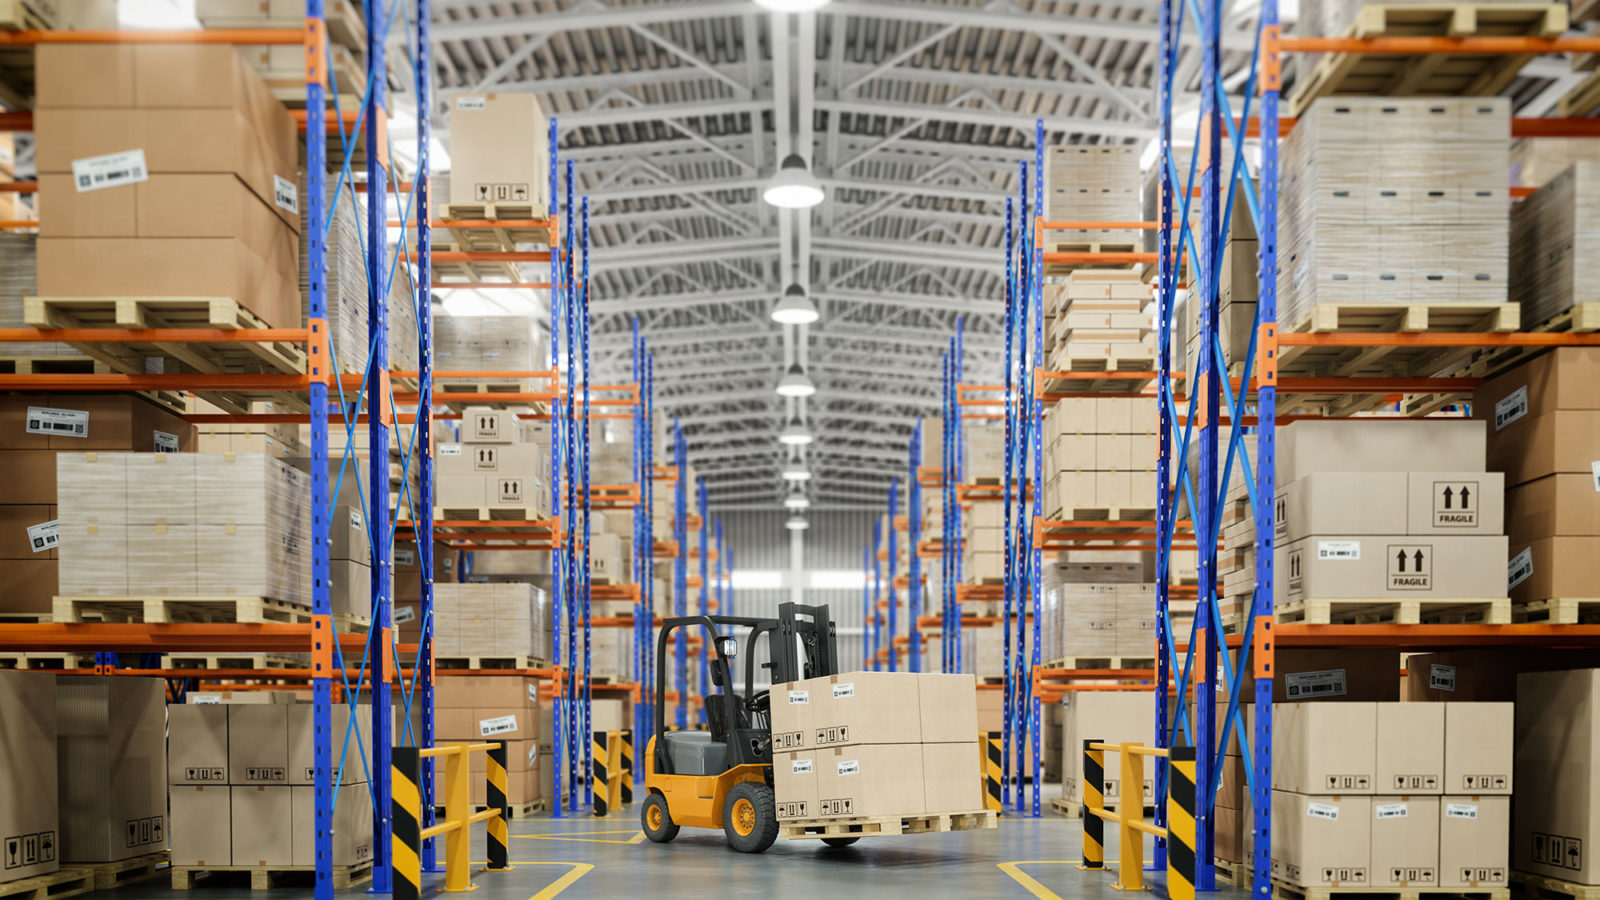 Boxes stackes in aisles in a warehouse.